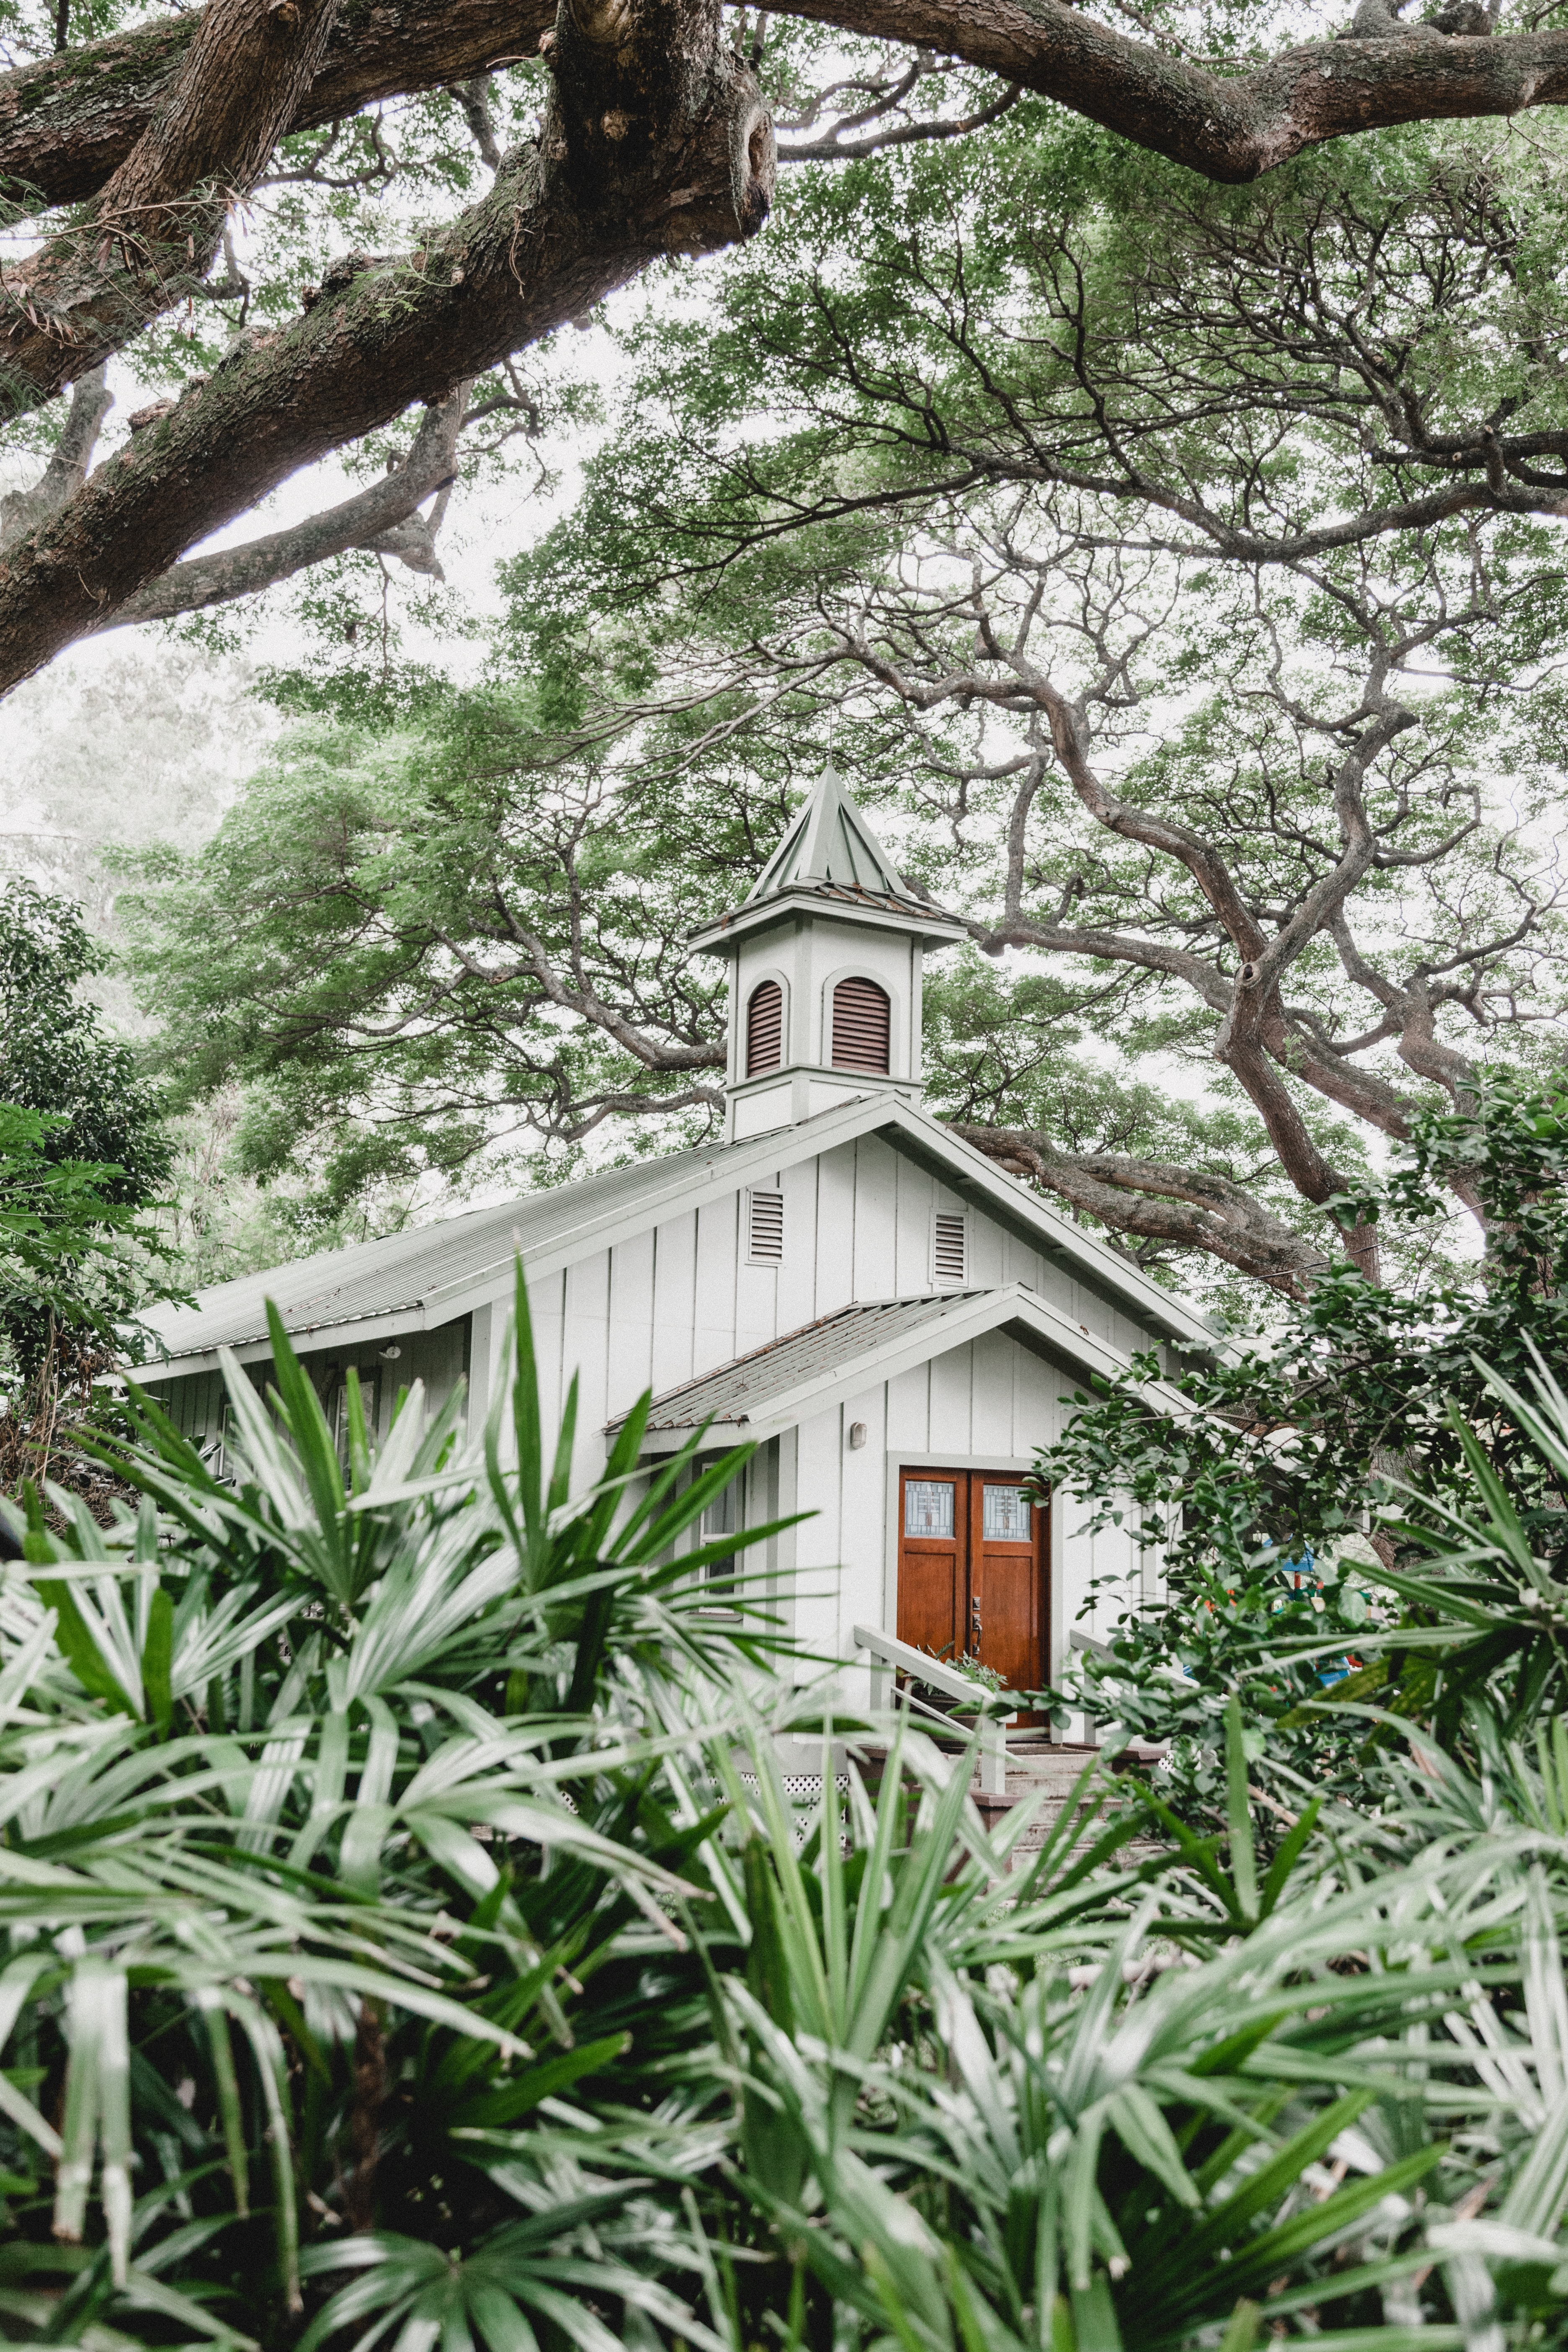 white wooden church near trees